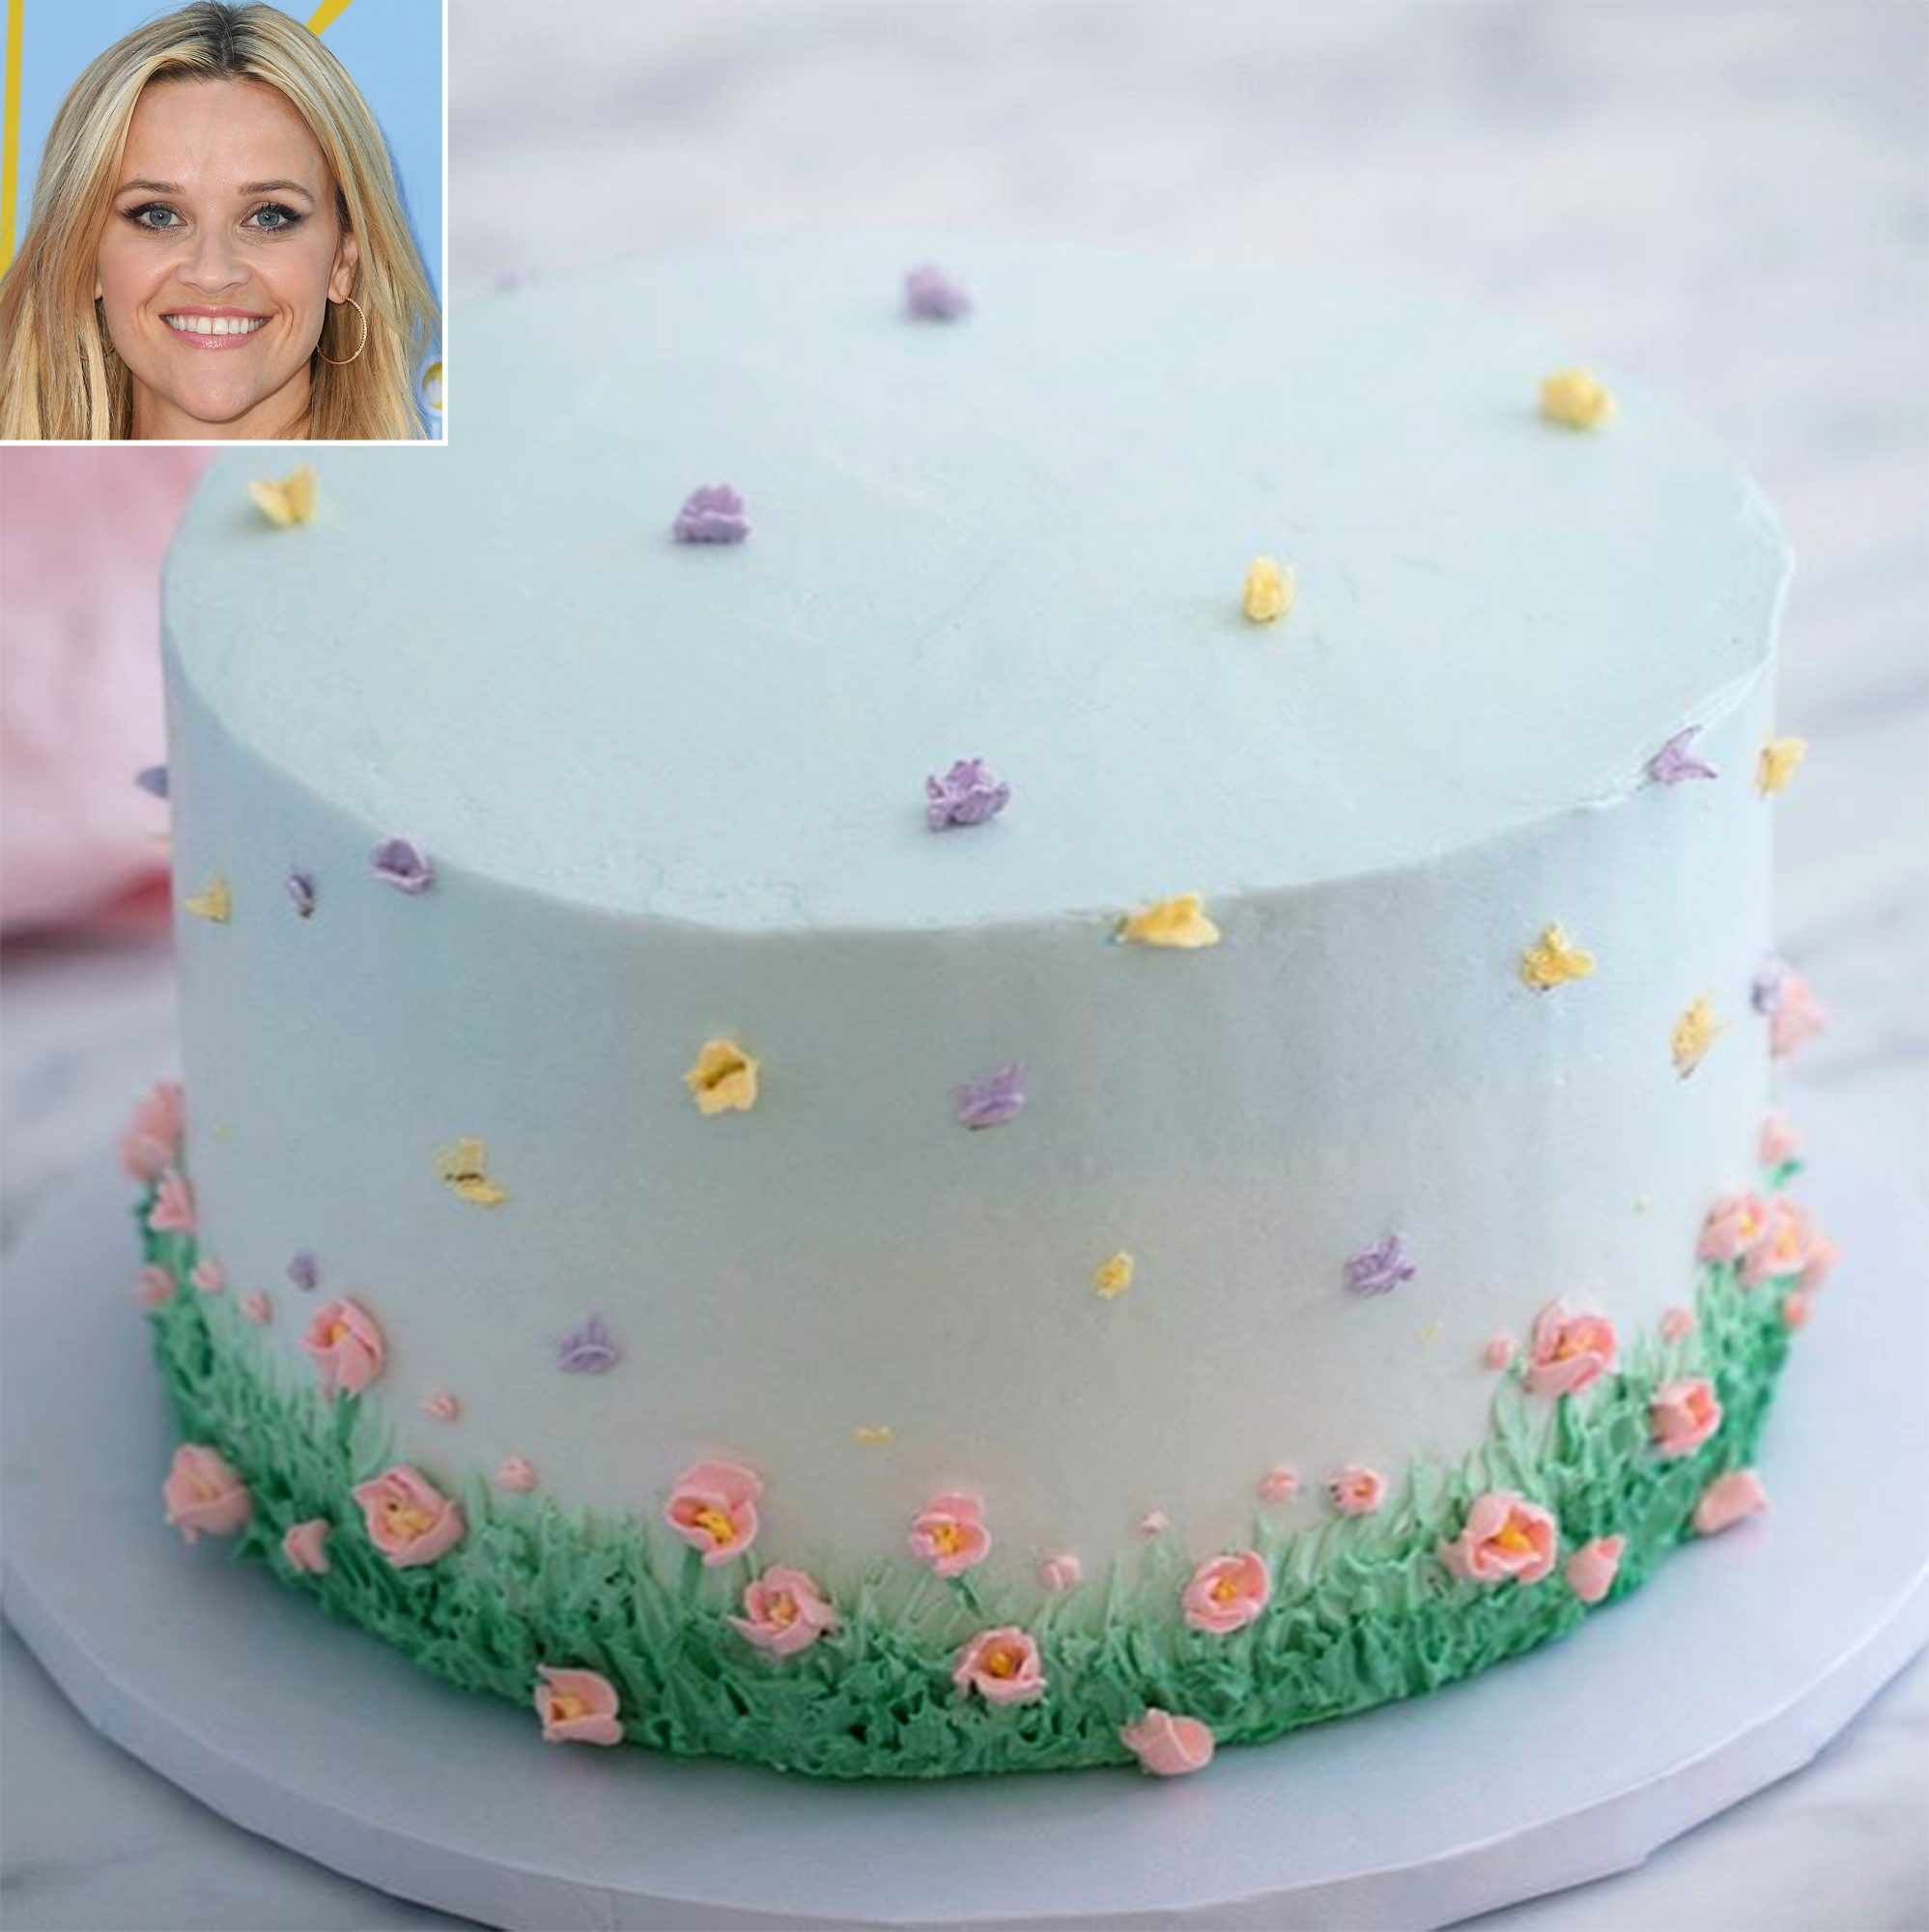 reese-witherspoon-cake